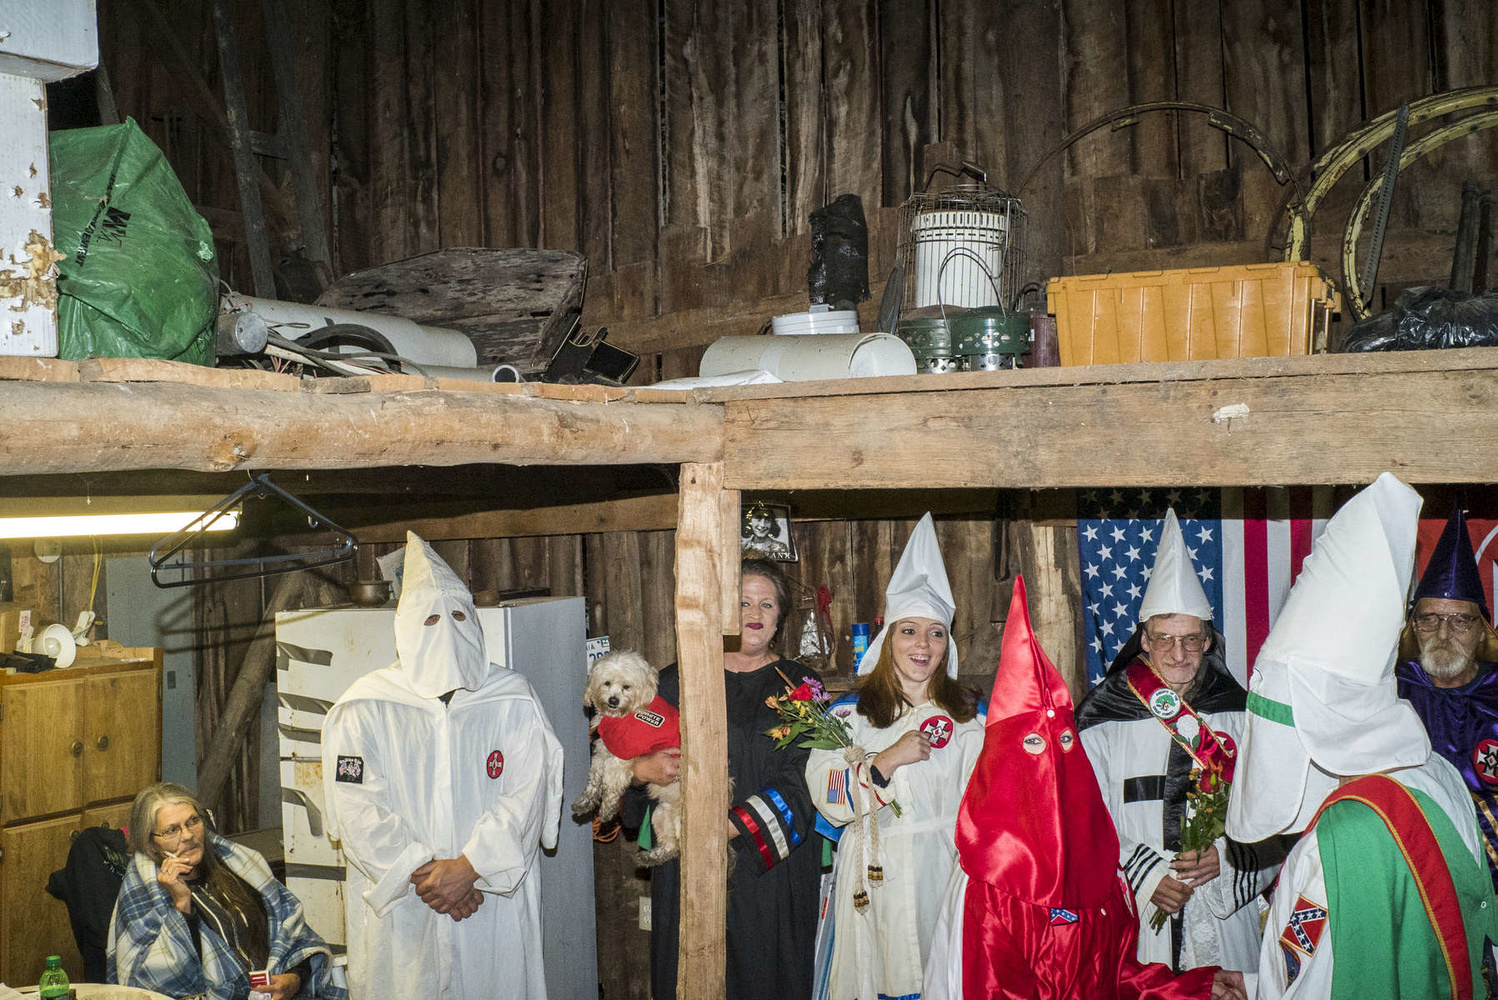 The wedding of two members of the KKK in a barn in rural Tennessee. (Peter van Agtmael/Magnum Photos)